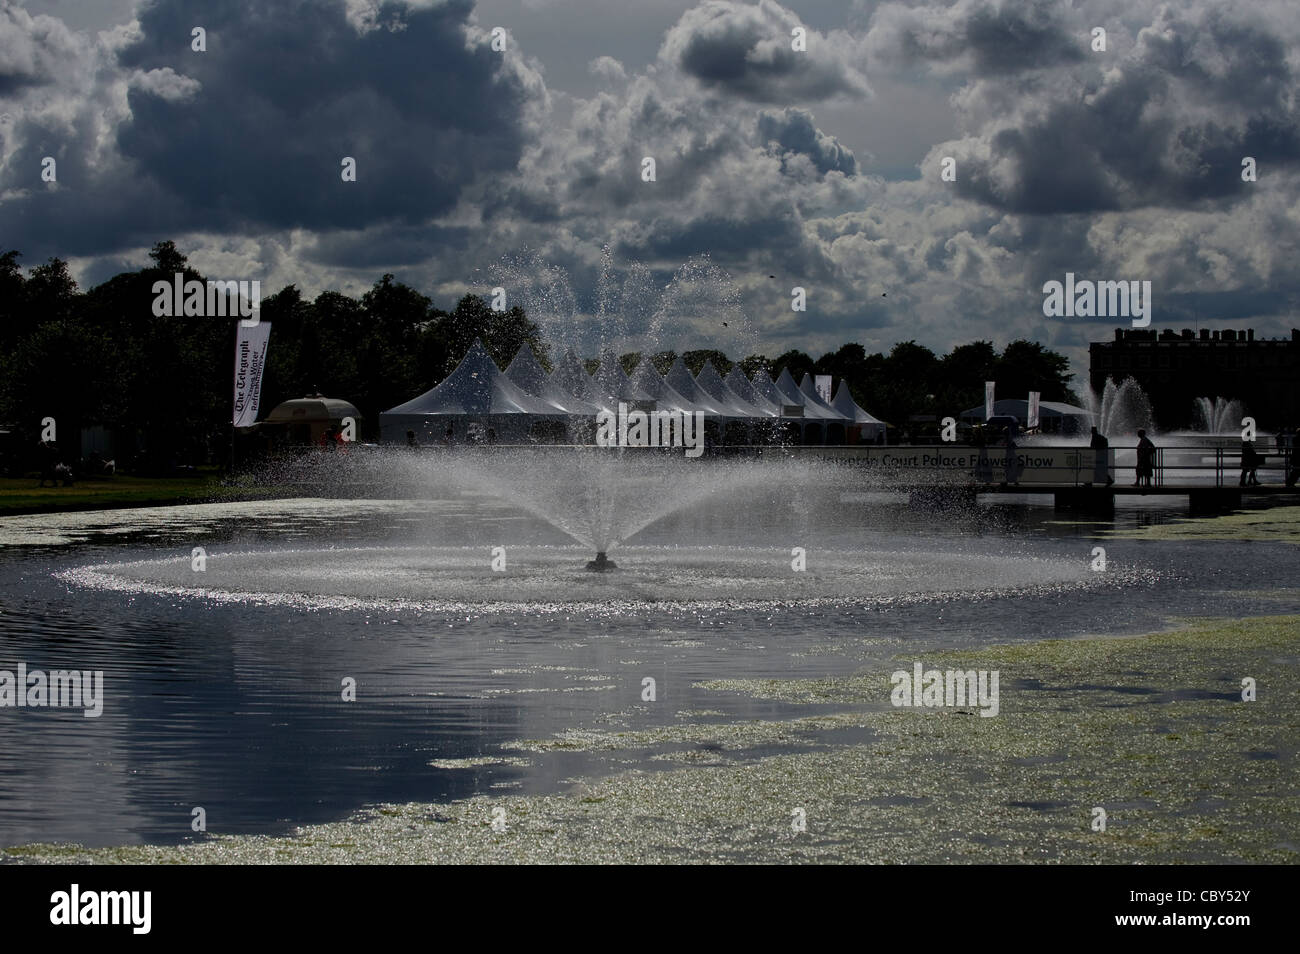 Ornamental Fountain and Lakes at Hampton Court during the Royal Hampton Court Flower Show with marquees and clouds Stock Photo